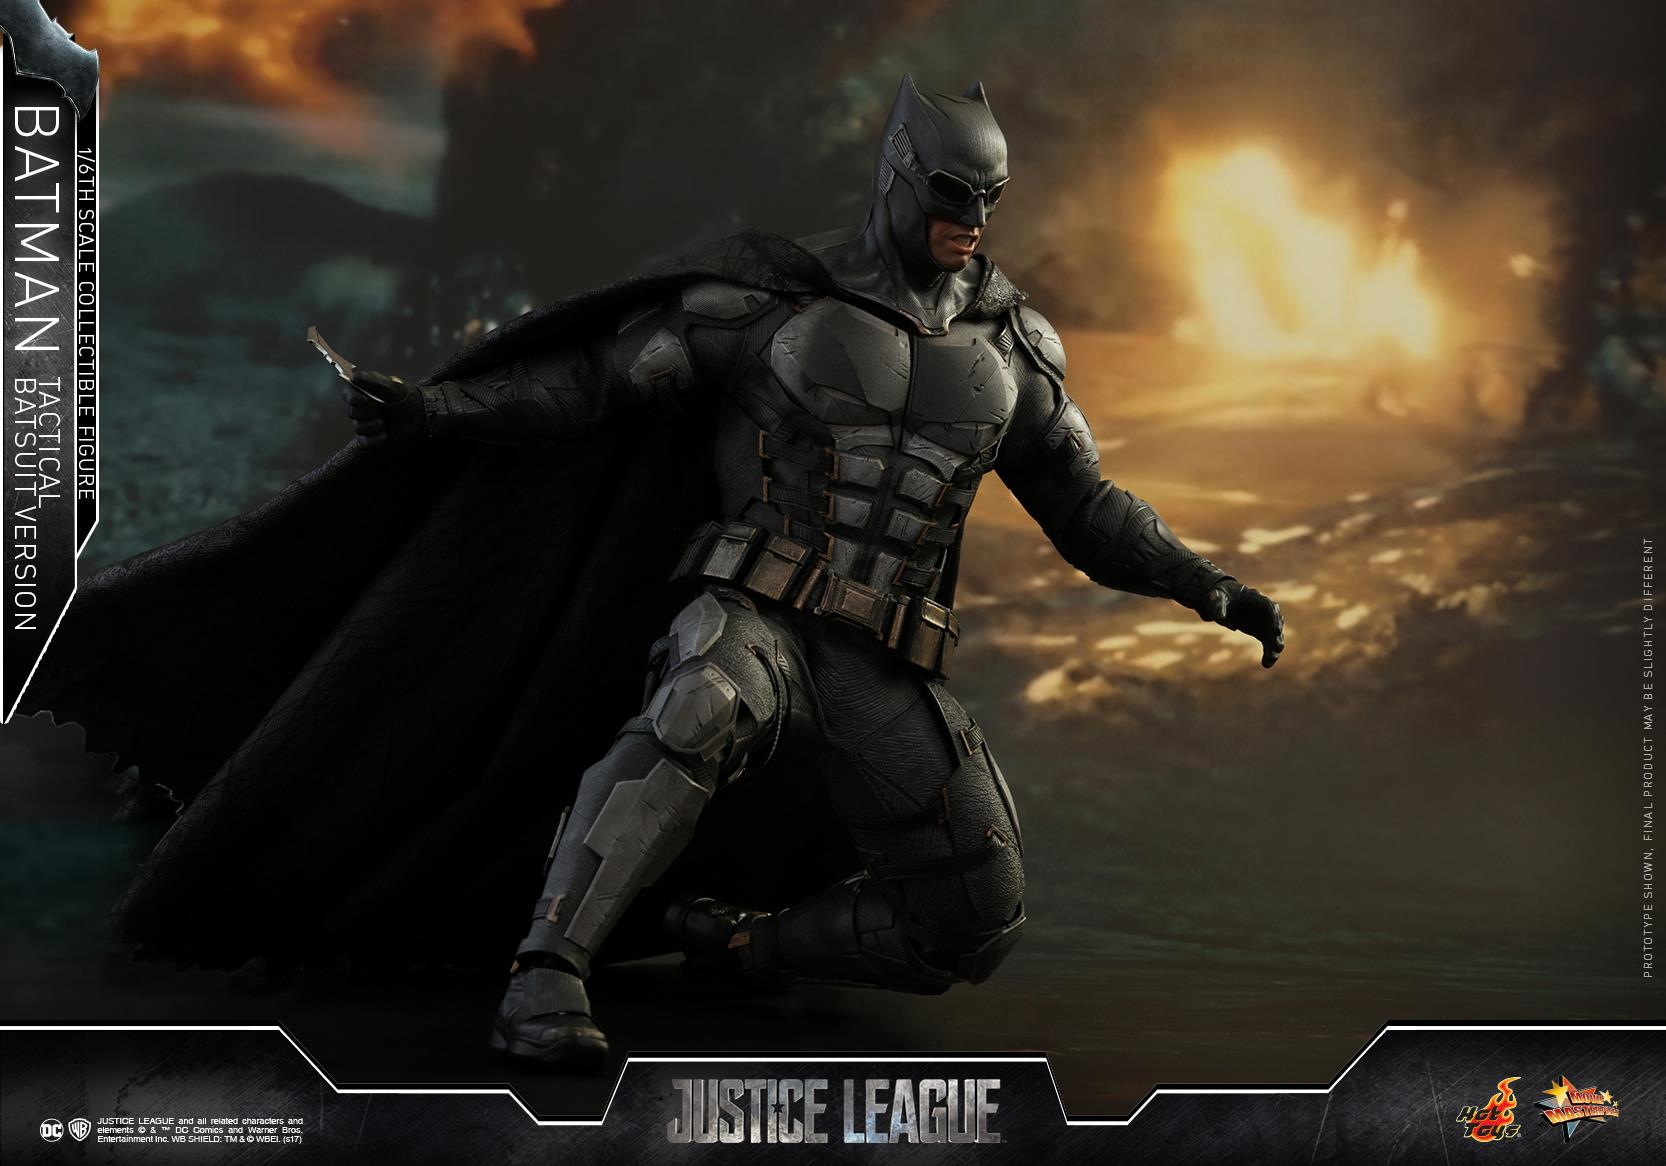 The Dark Knight's Tactical Suit Is Featured In Latest Justice League Merch